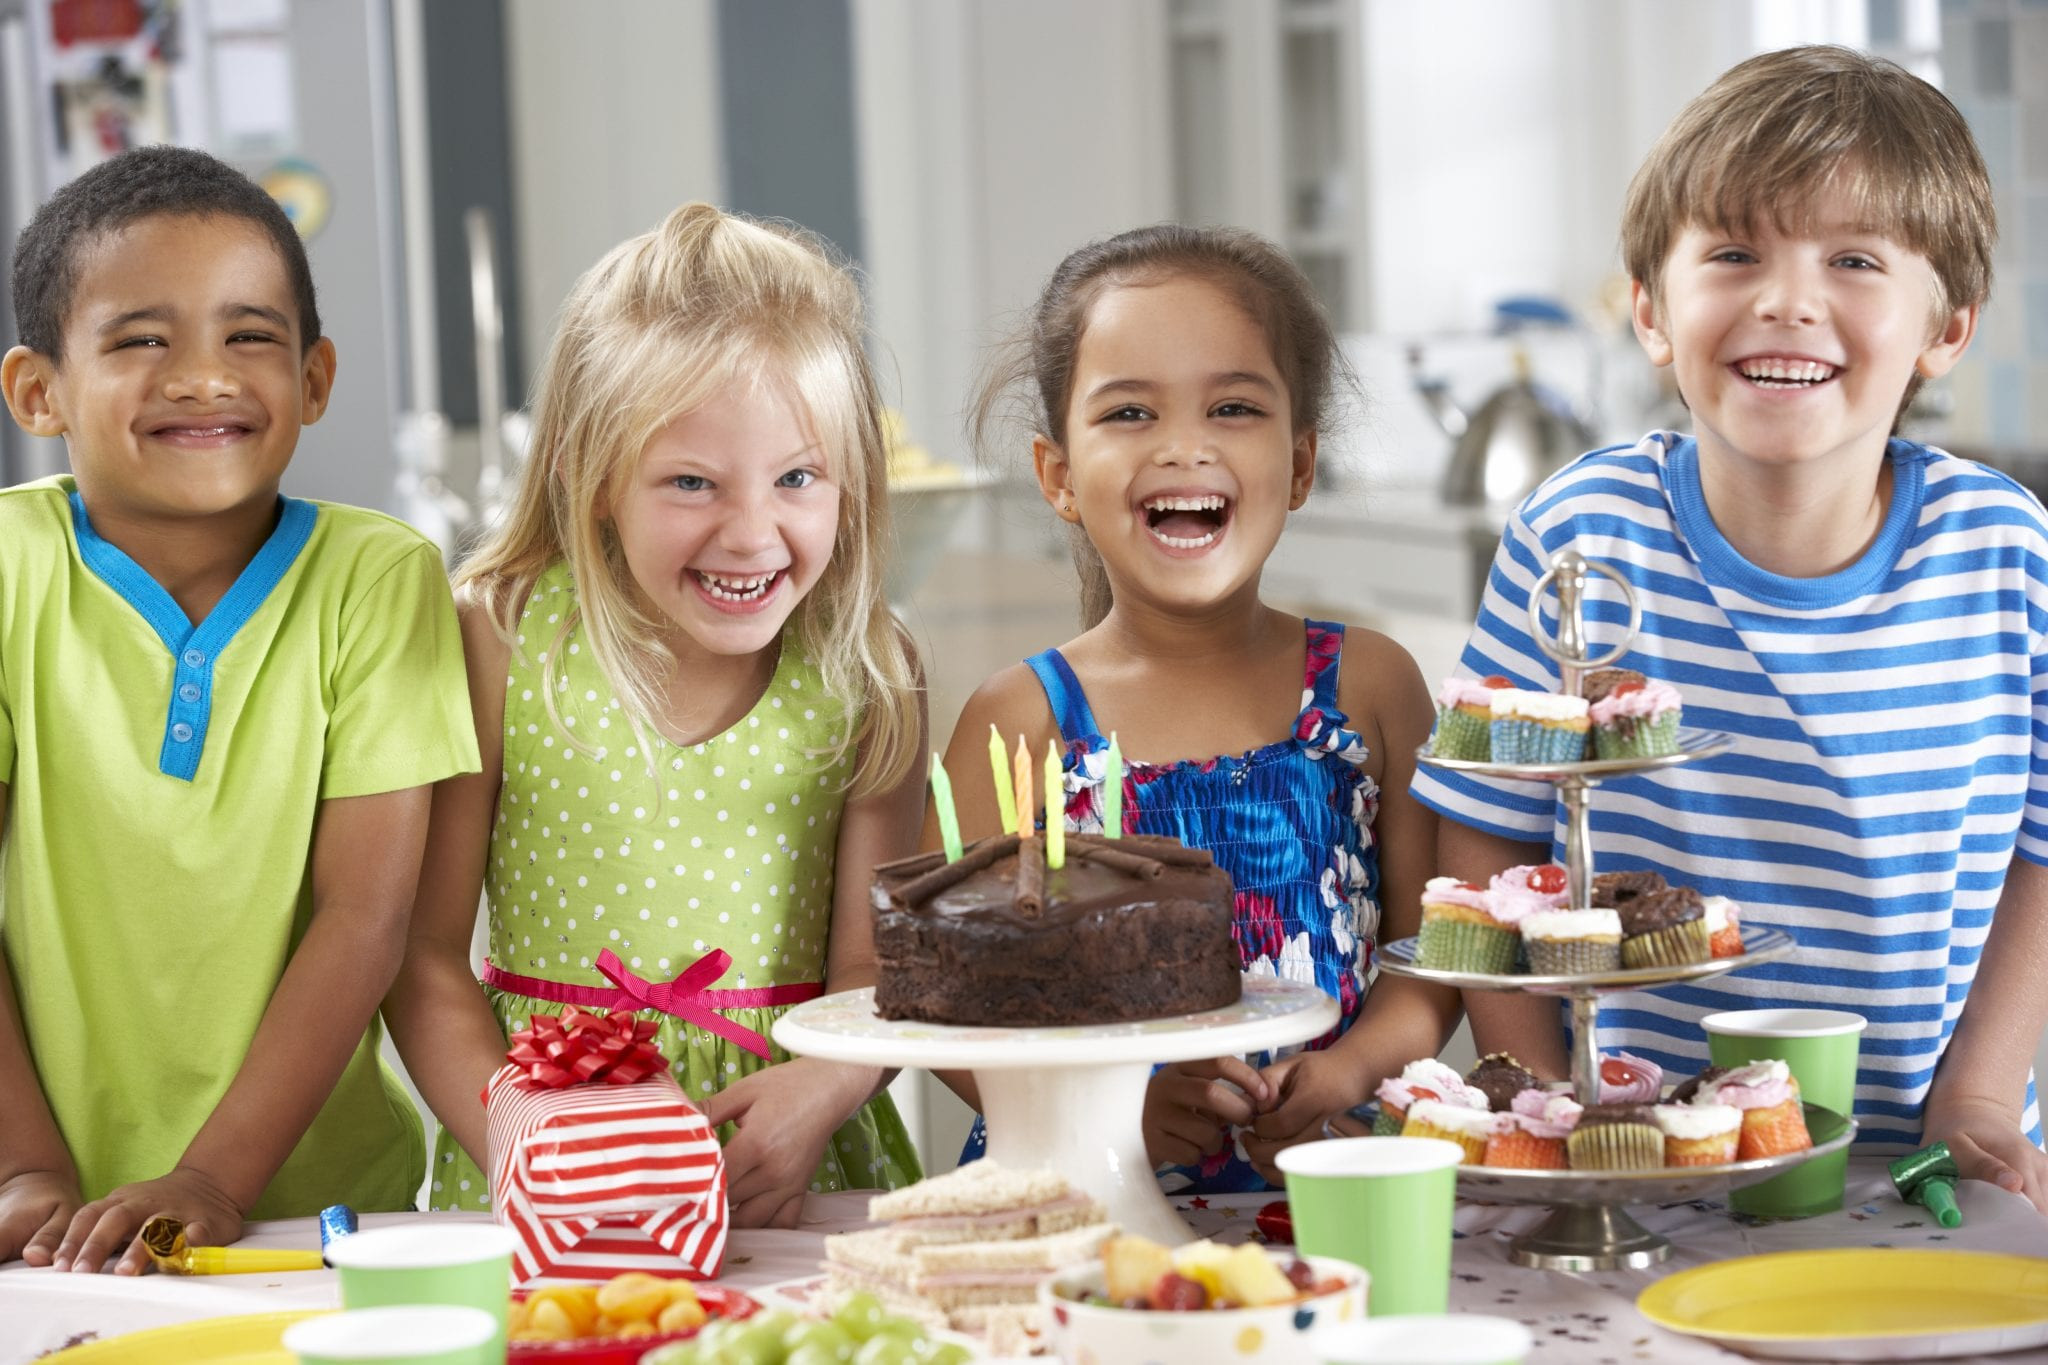 Best ideas about 5 Year Old Birthday Party Places . Save or Pin 2019 Ultimate Guide to Kids Birthday Party Places in Now.